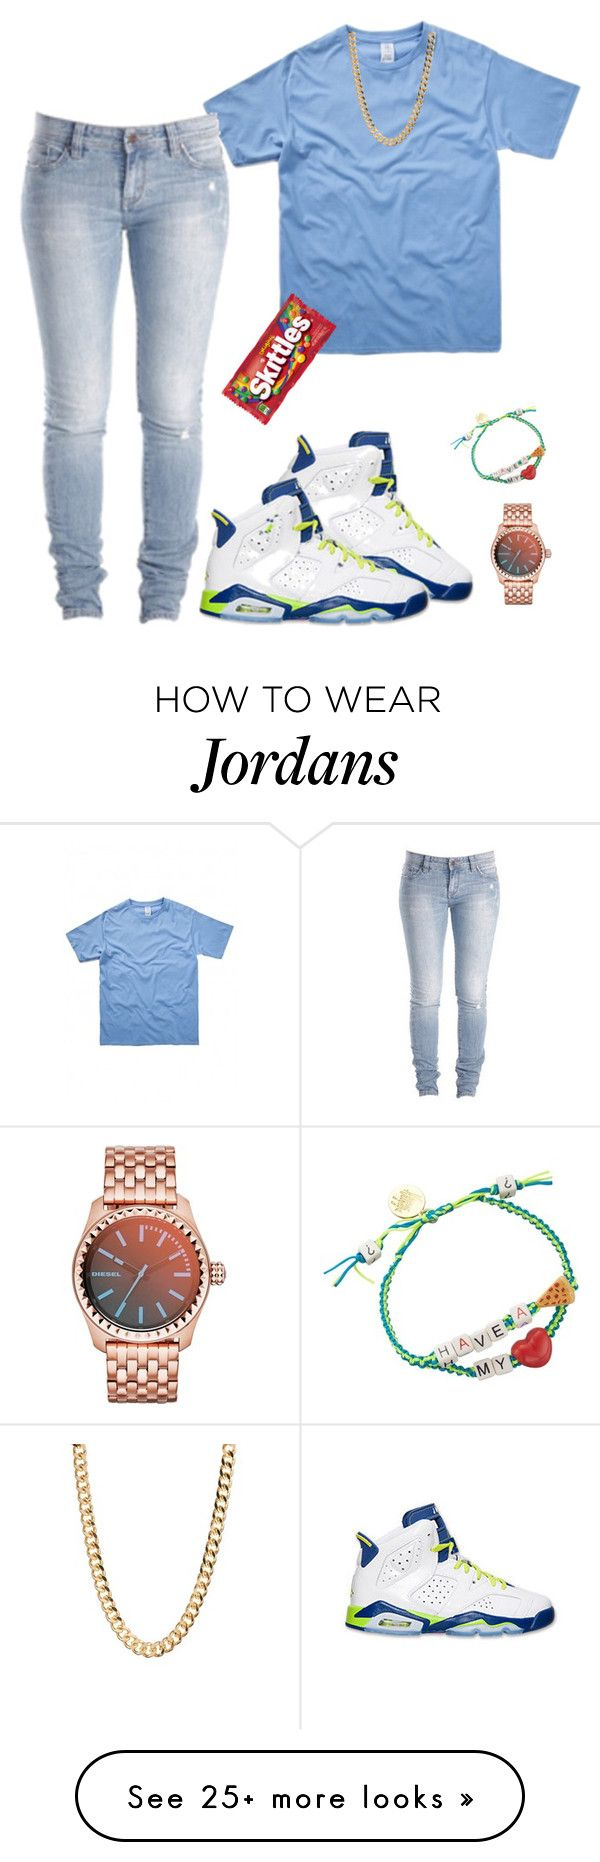 """Untitled #233"" by destinygotem on Polyvore featuring moda, Retrò, Venessa Arizaga, Diesel y CO"